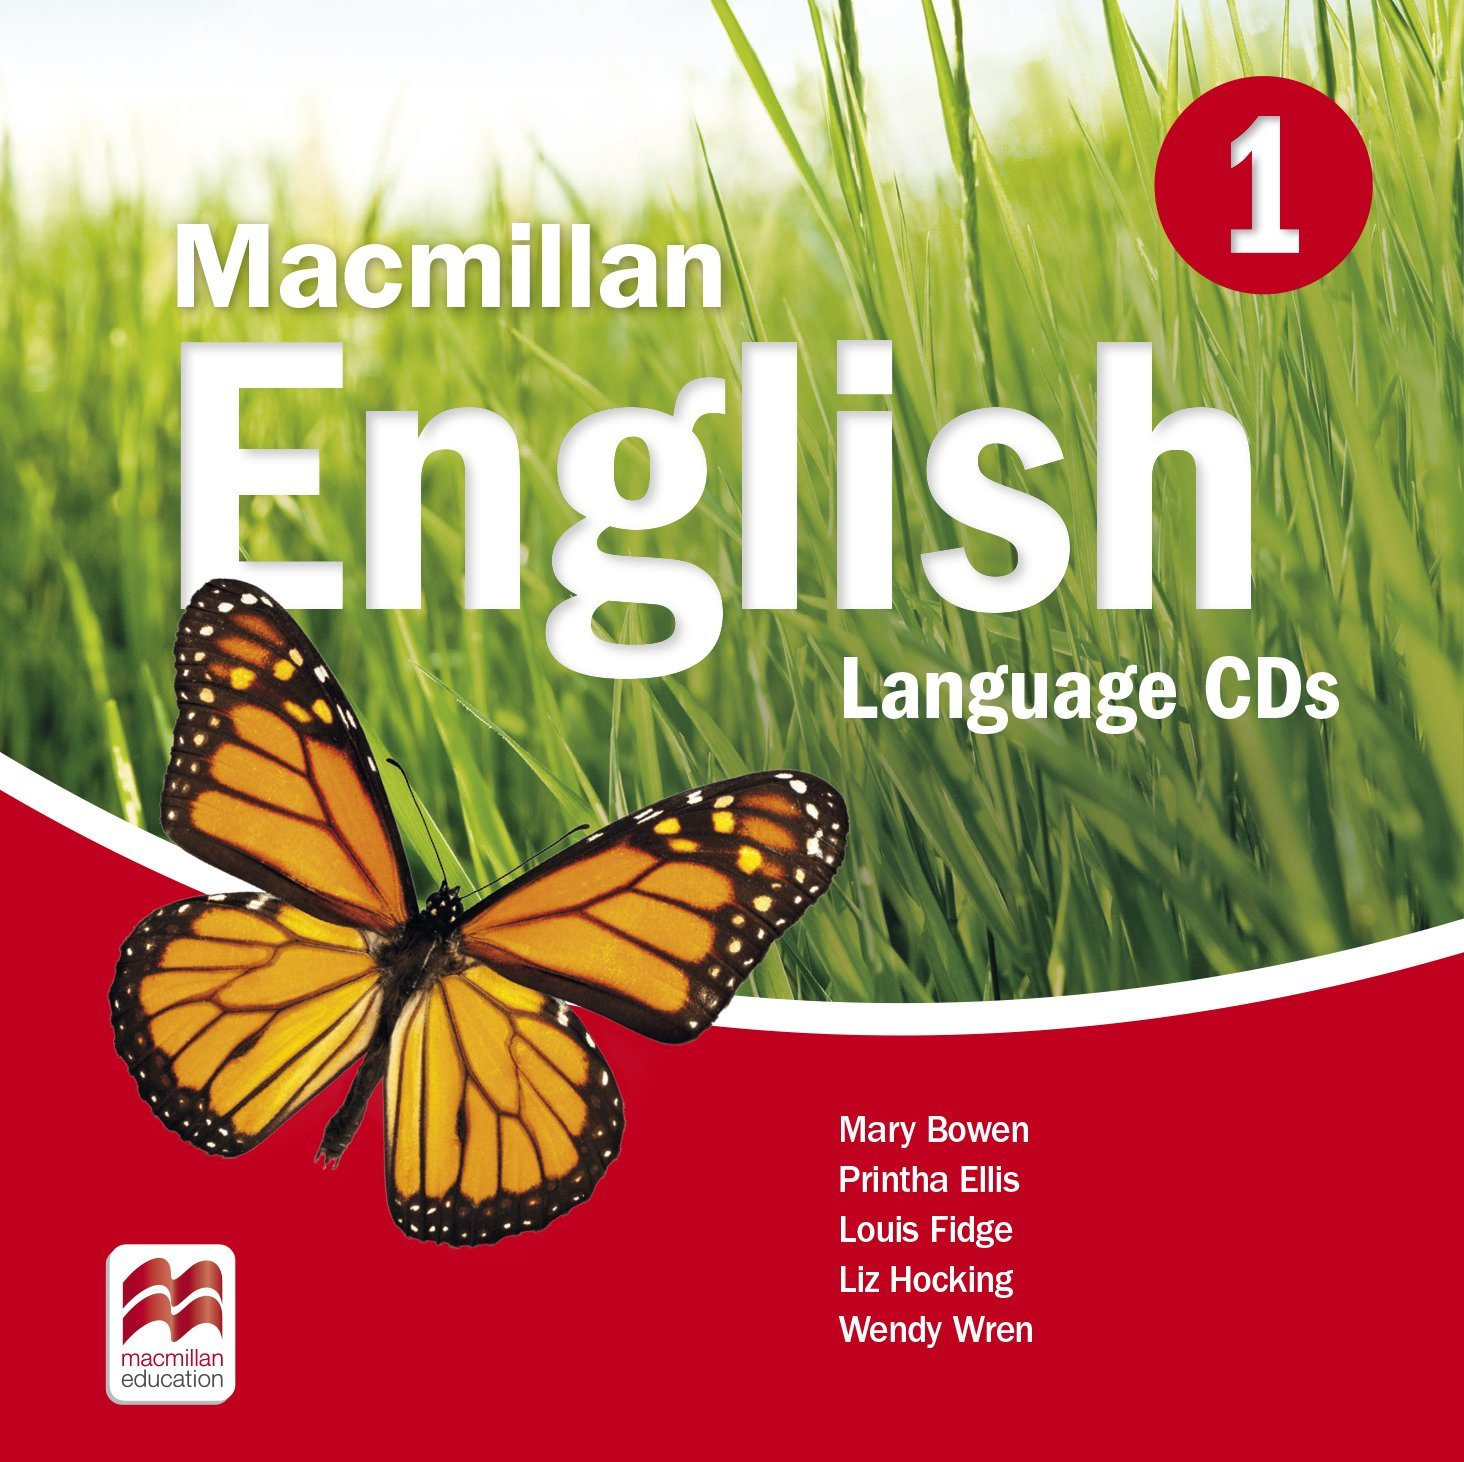 Download Macmillan English 1 Language CDx2 pdf